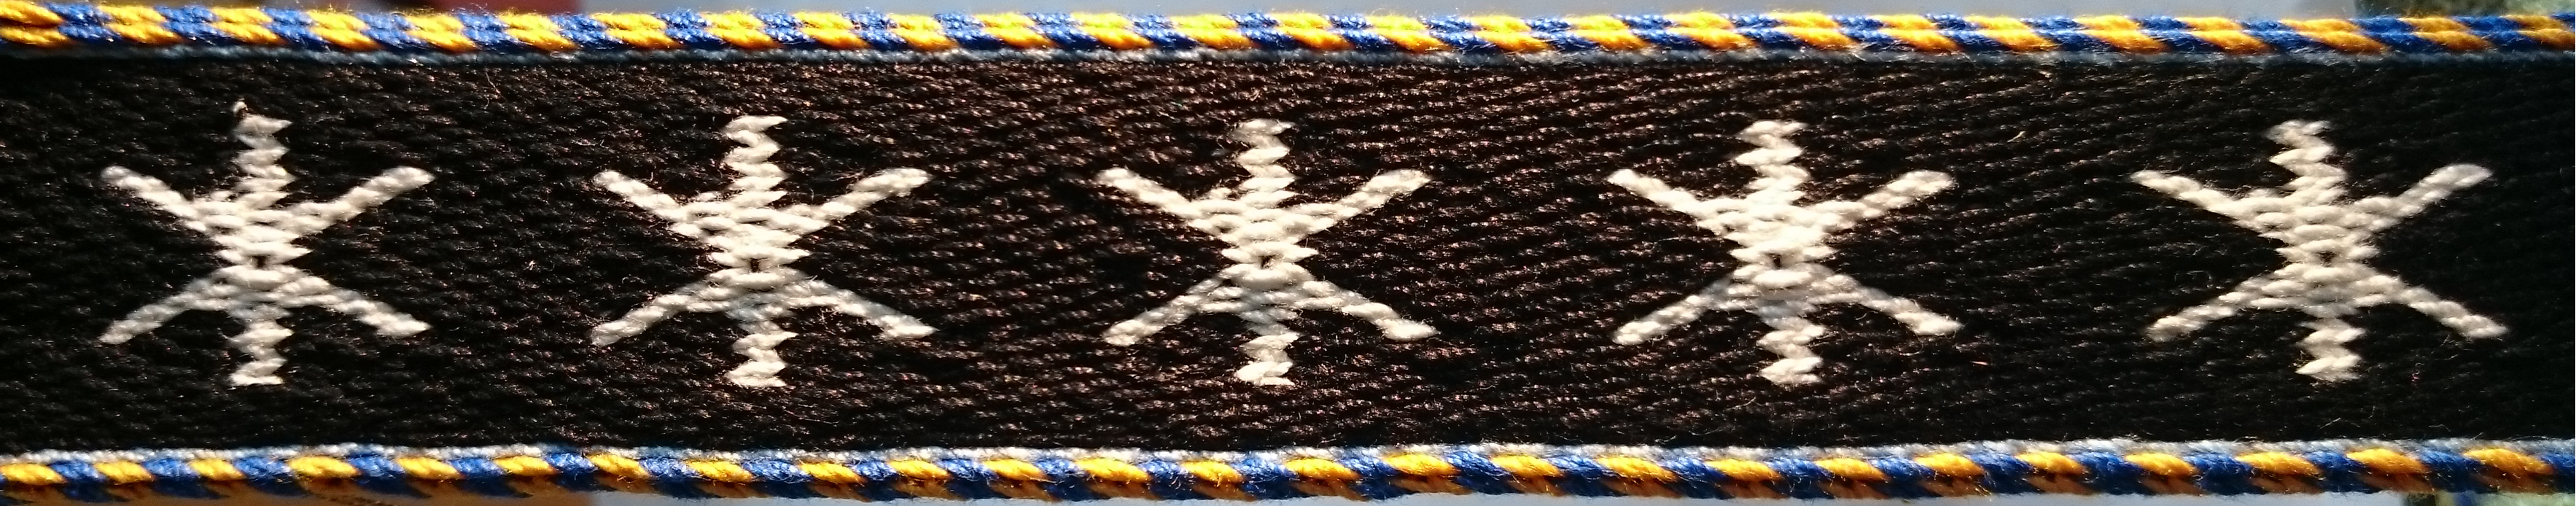 Tablet woven band, made using the Orion A pattern